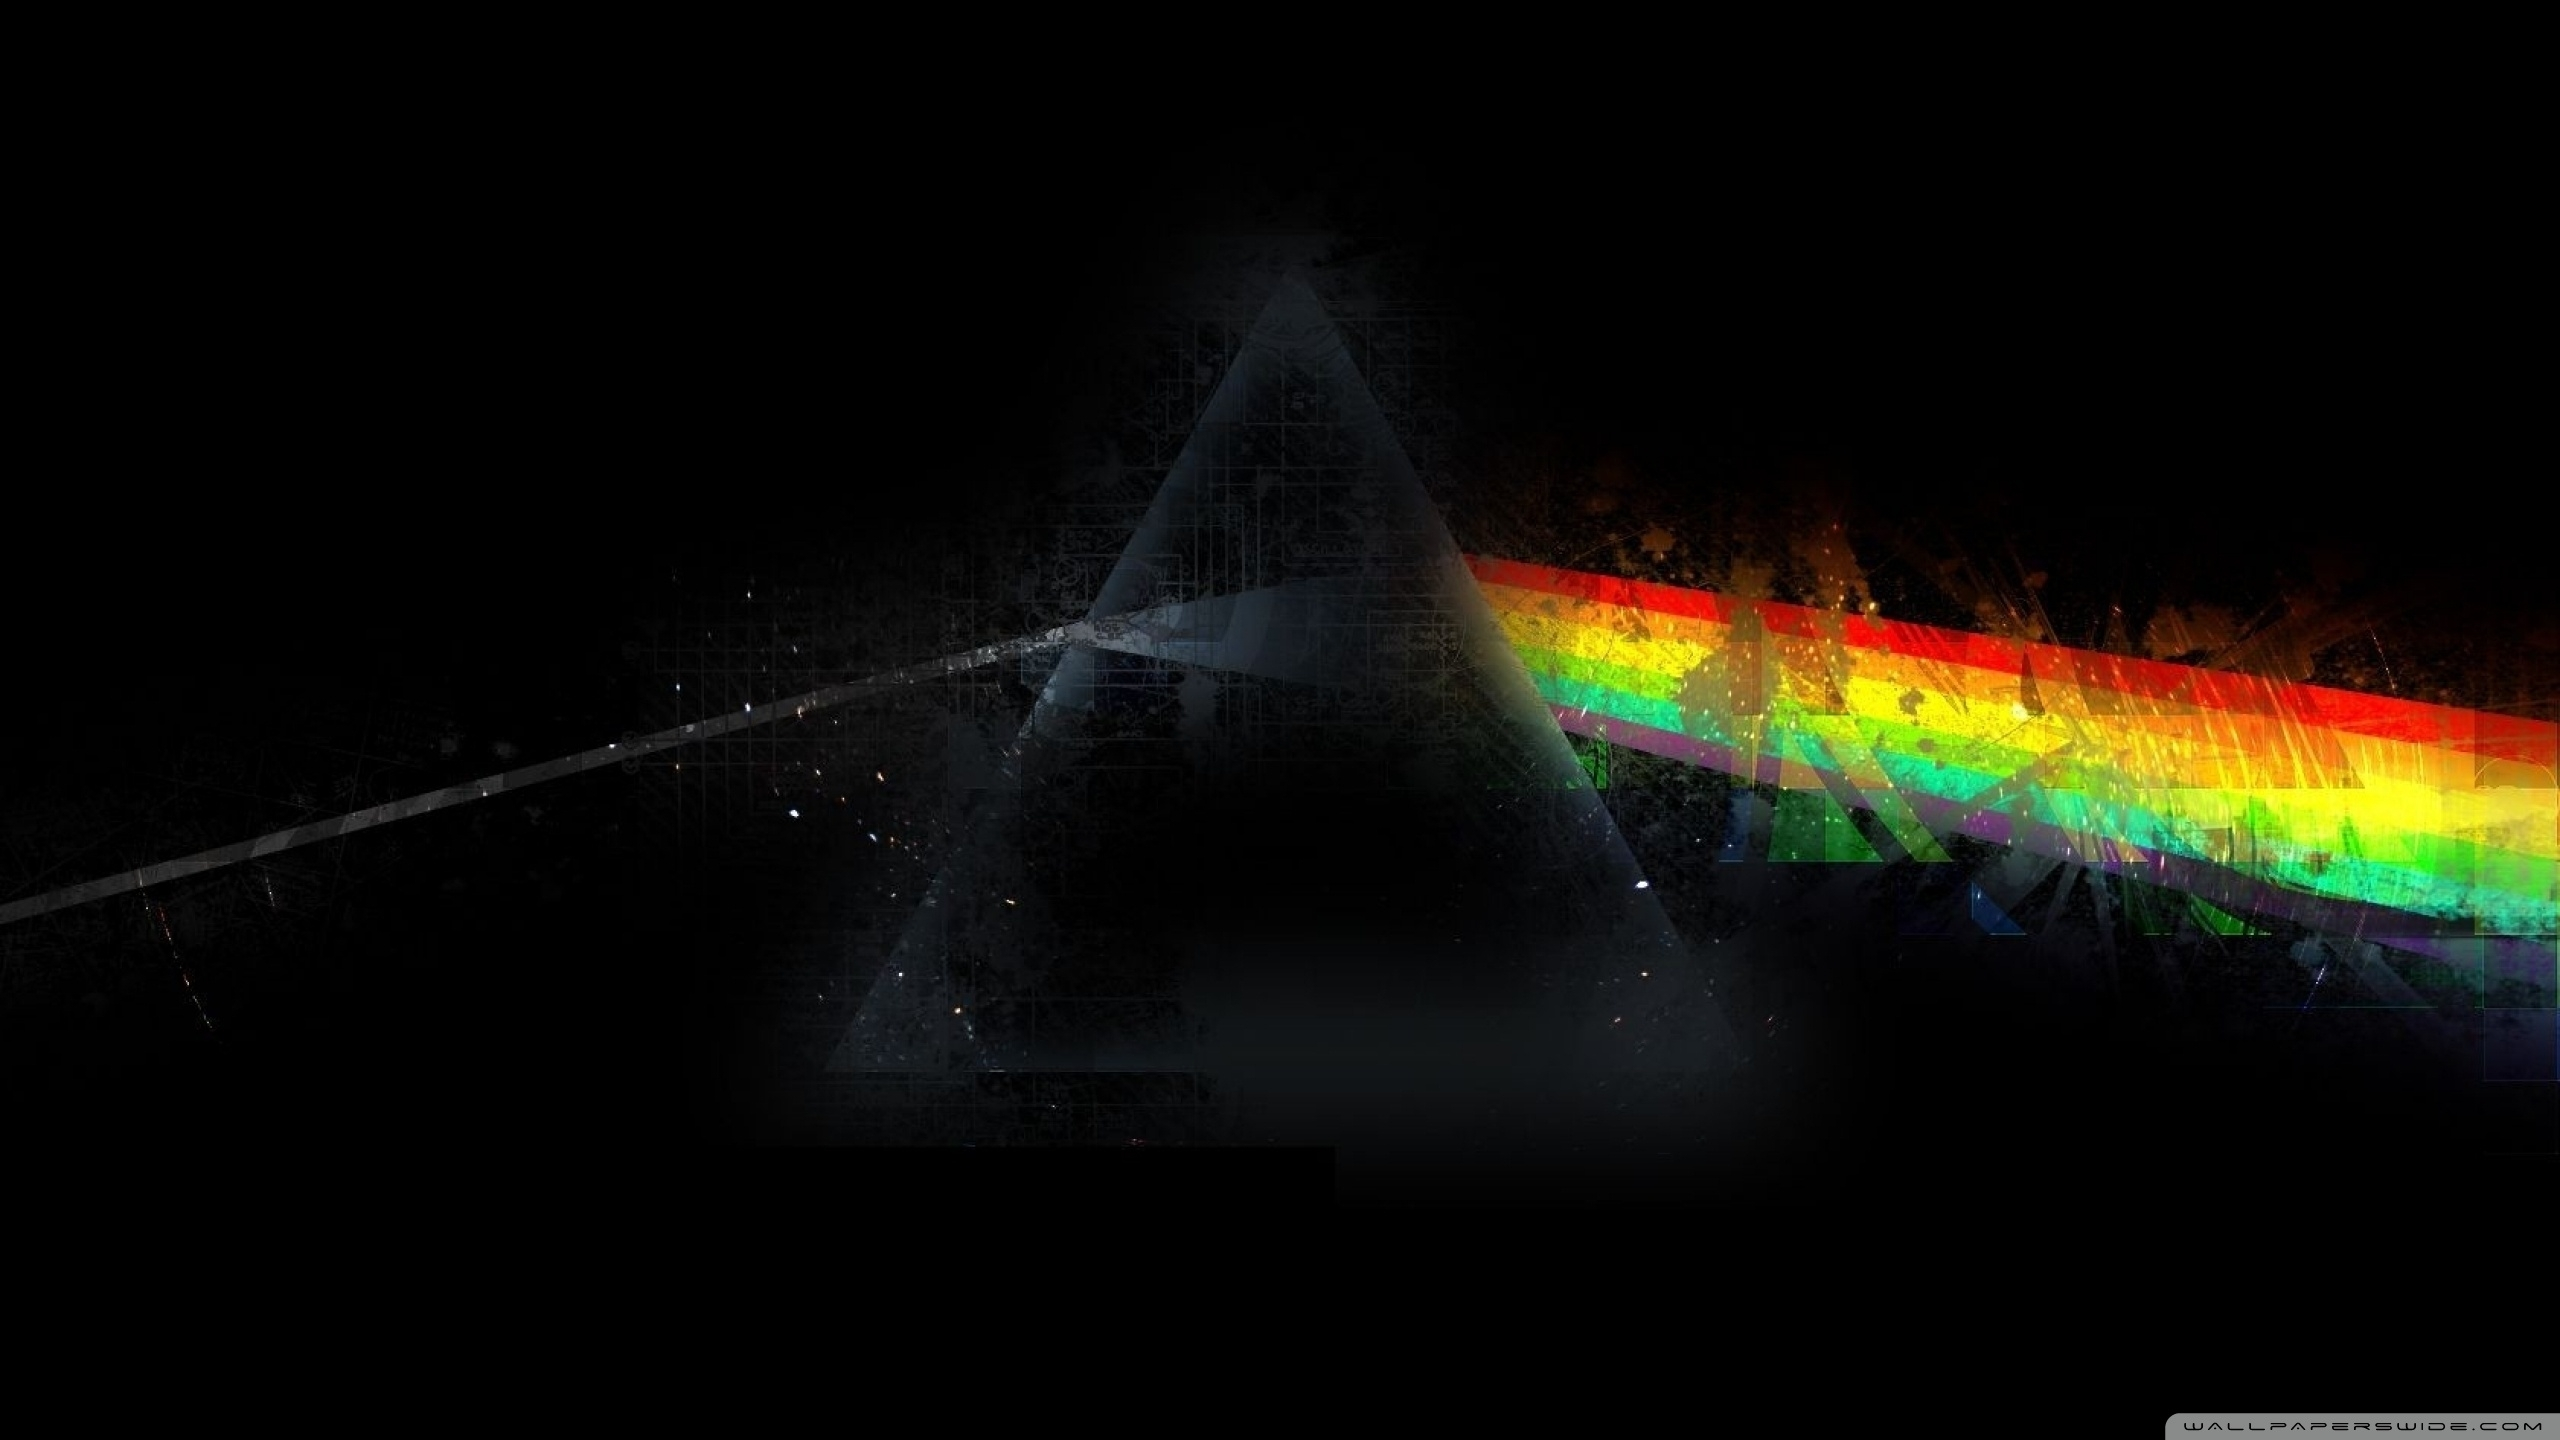 pink floyd dispersion ❤ 4k hd desktop wallpaper for 4k ultra hd tv